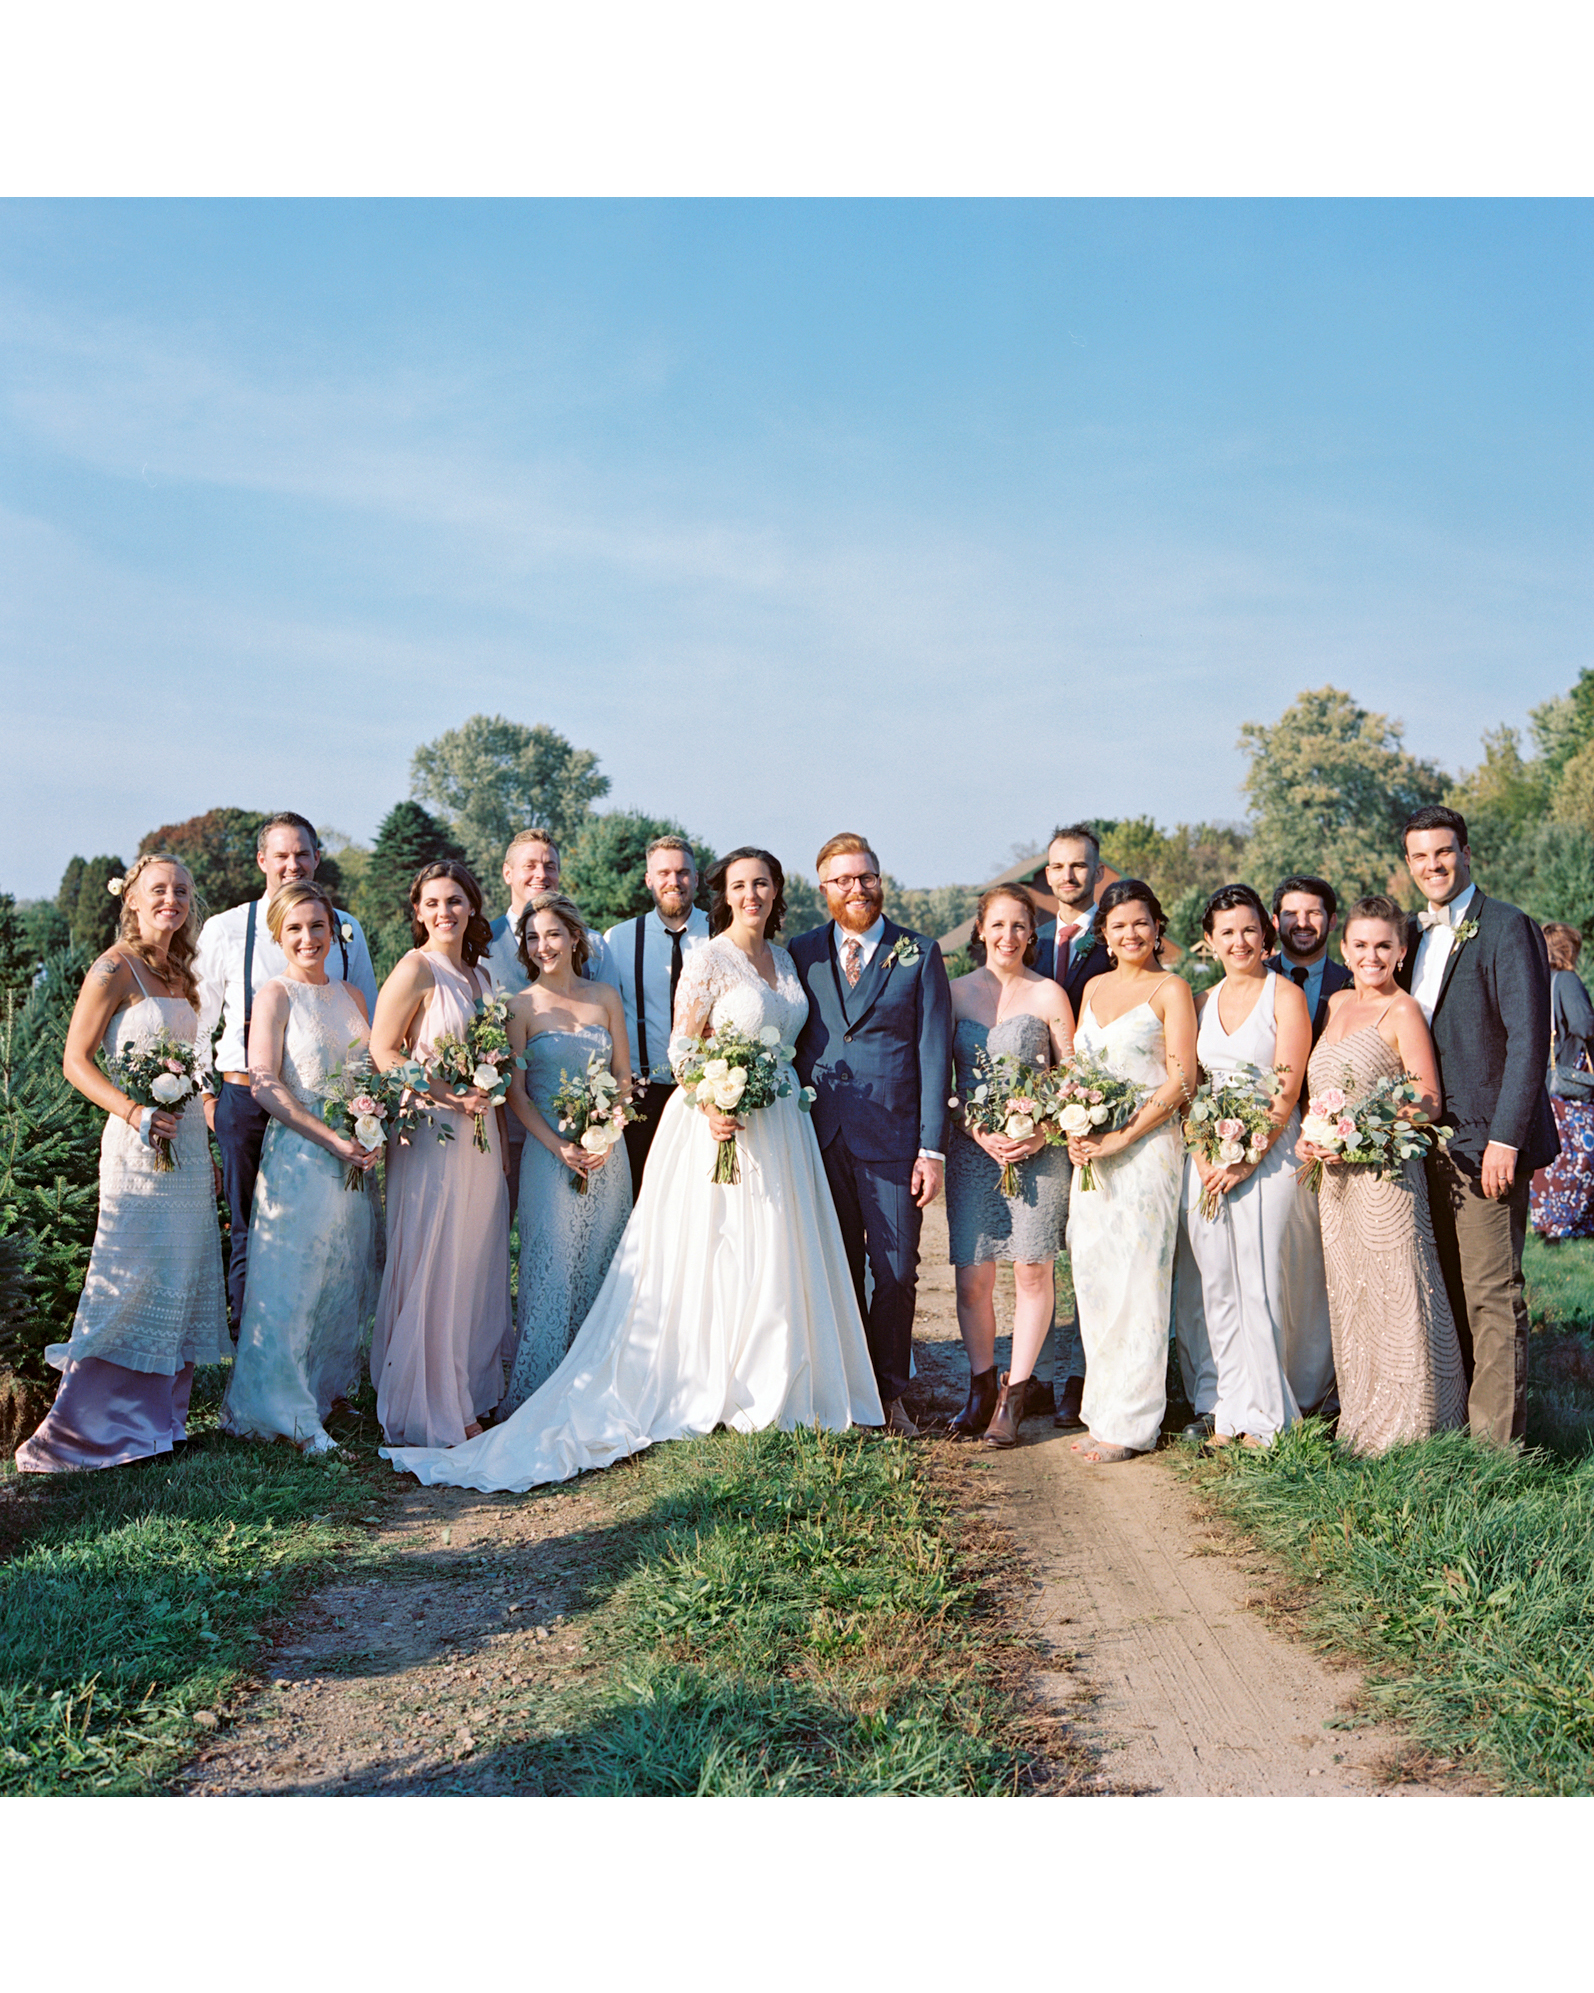 rachel elijah wedding entire bridal party